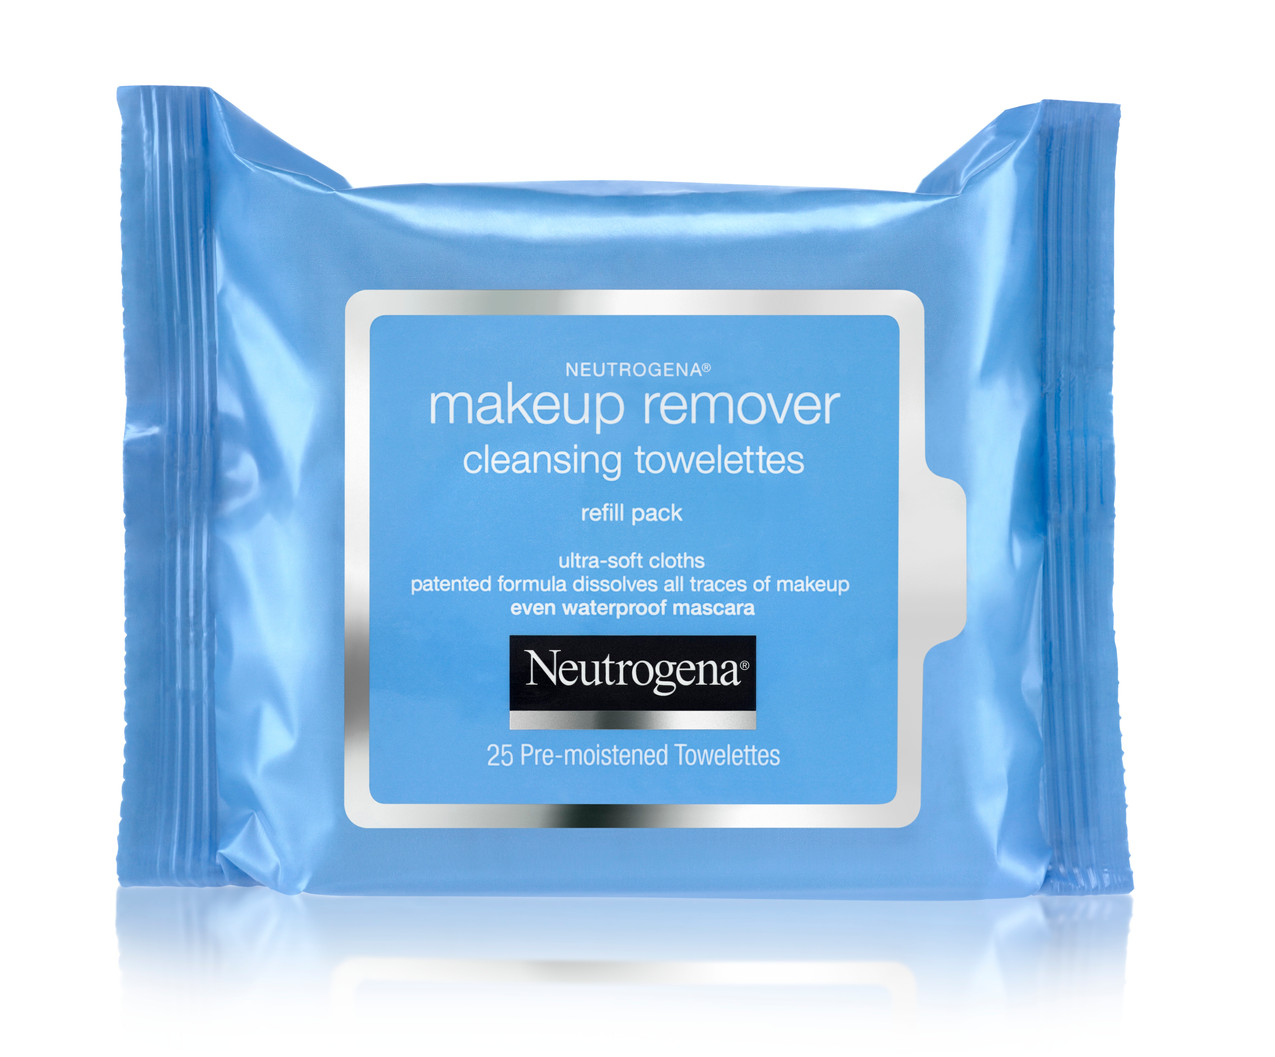 NEUTROGENA Make-Up Remover Cleansing Towelettes - blues final